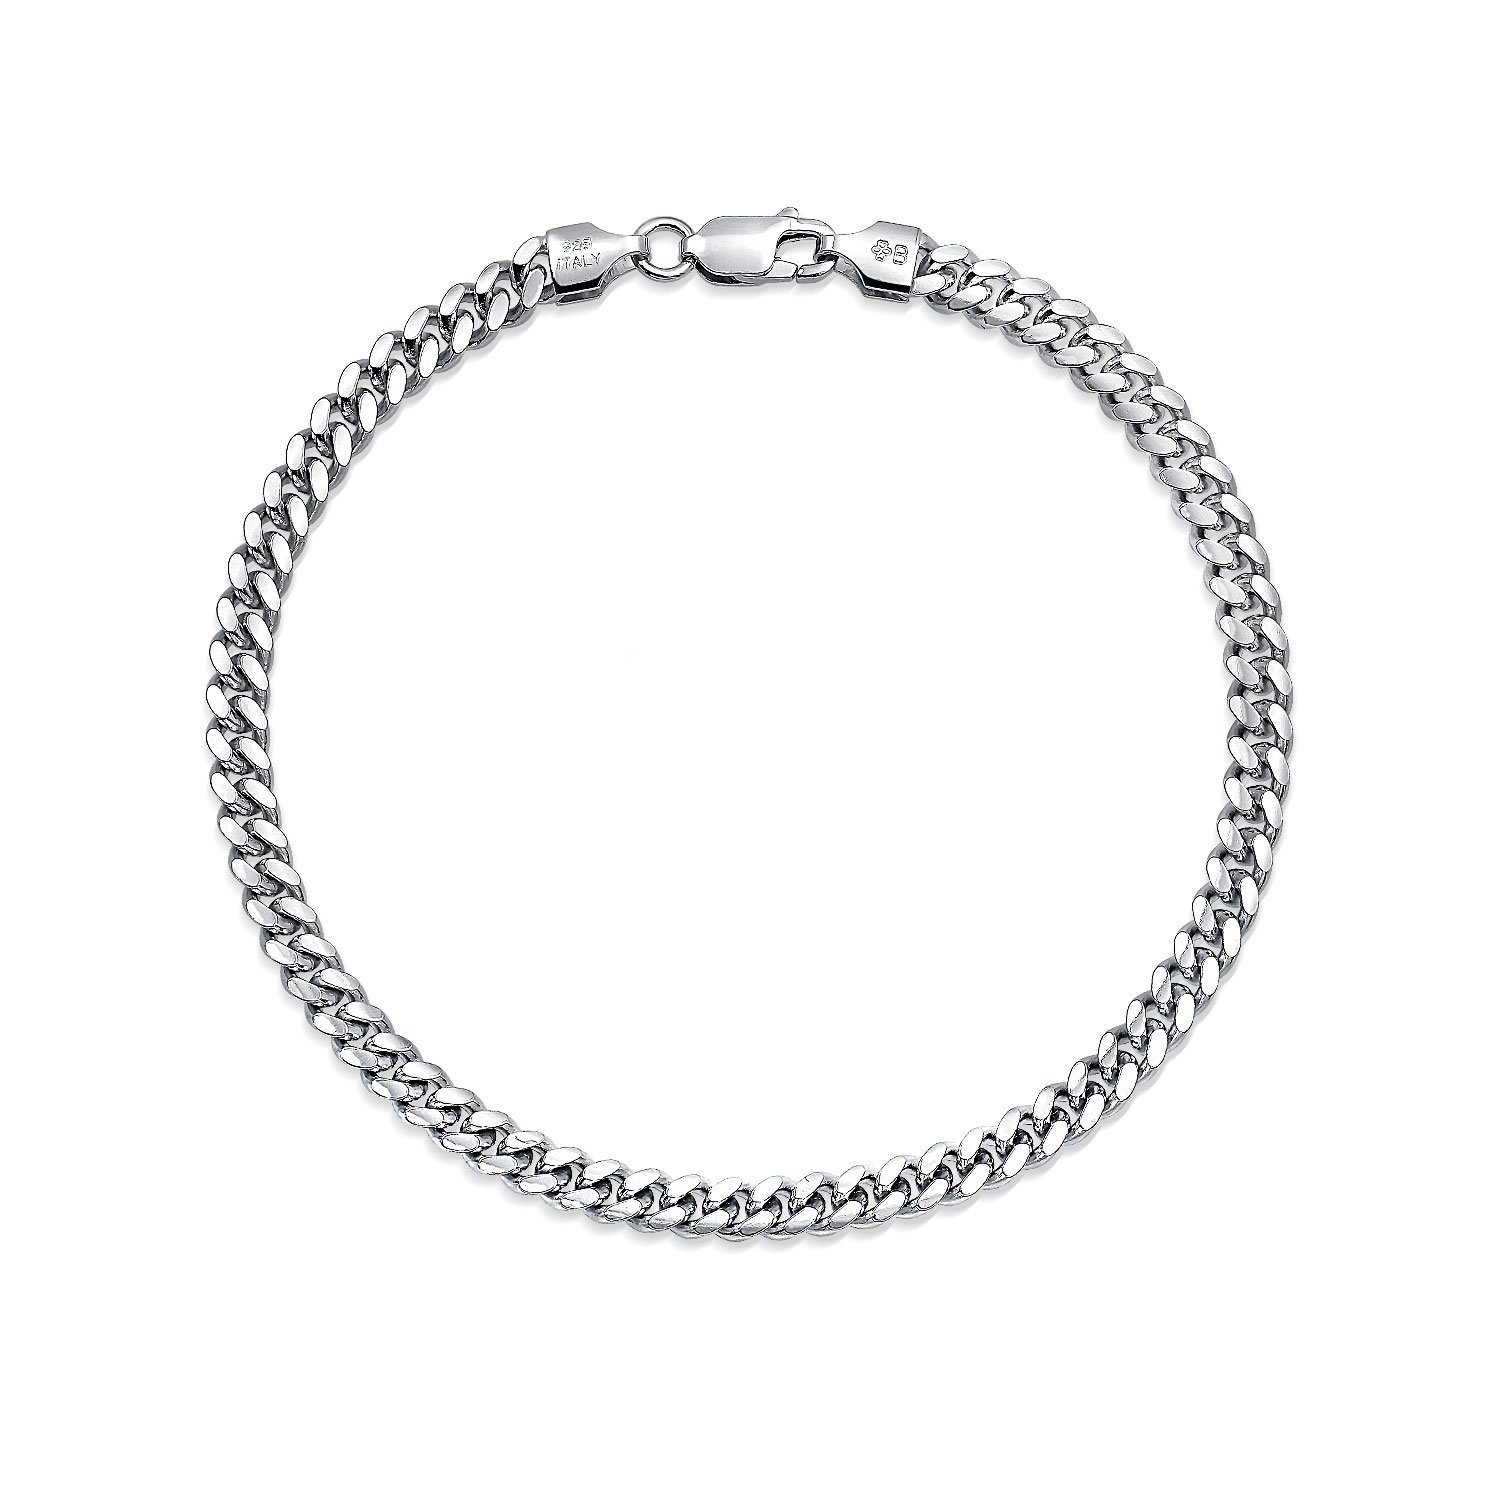 Amazon.com  Miami Cuban Curb Link Bracelet For Men 150 Gauge Solid Heavy  High Polish 925 Sterling Silver Made In Italy  Link Bracelets  Jewelry 6a5f6455085c